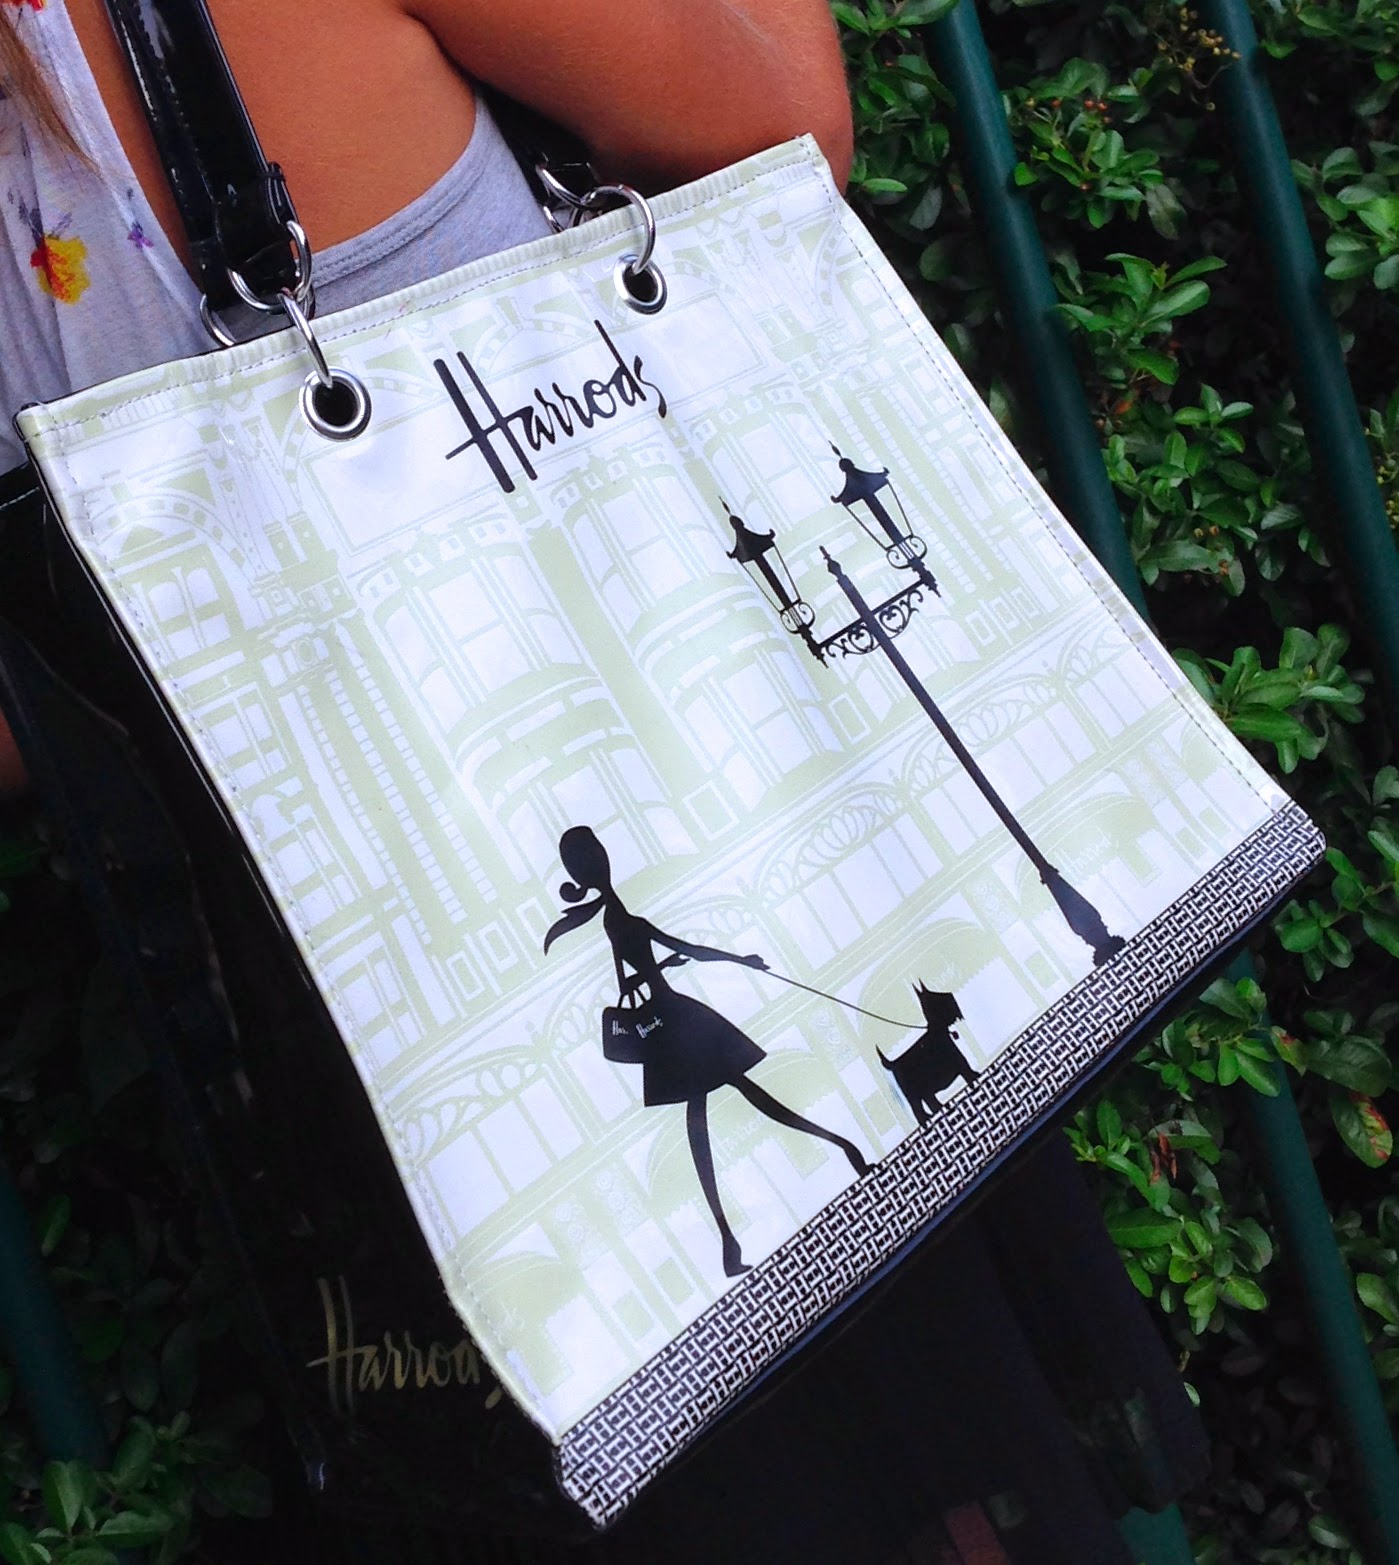 Harrods Shopping Bag